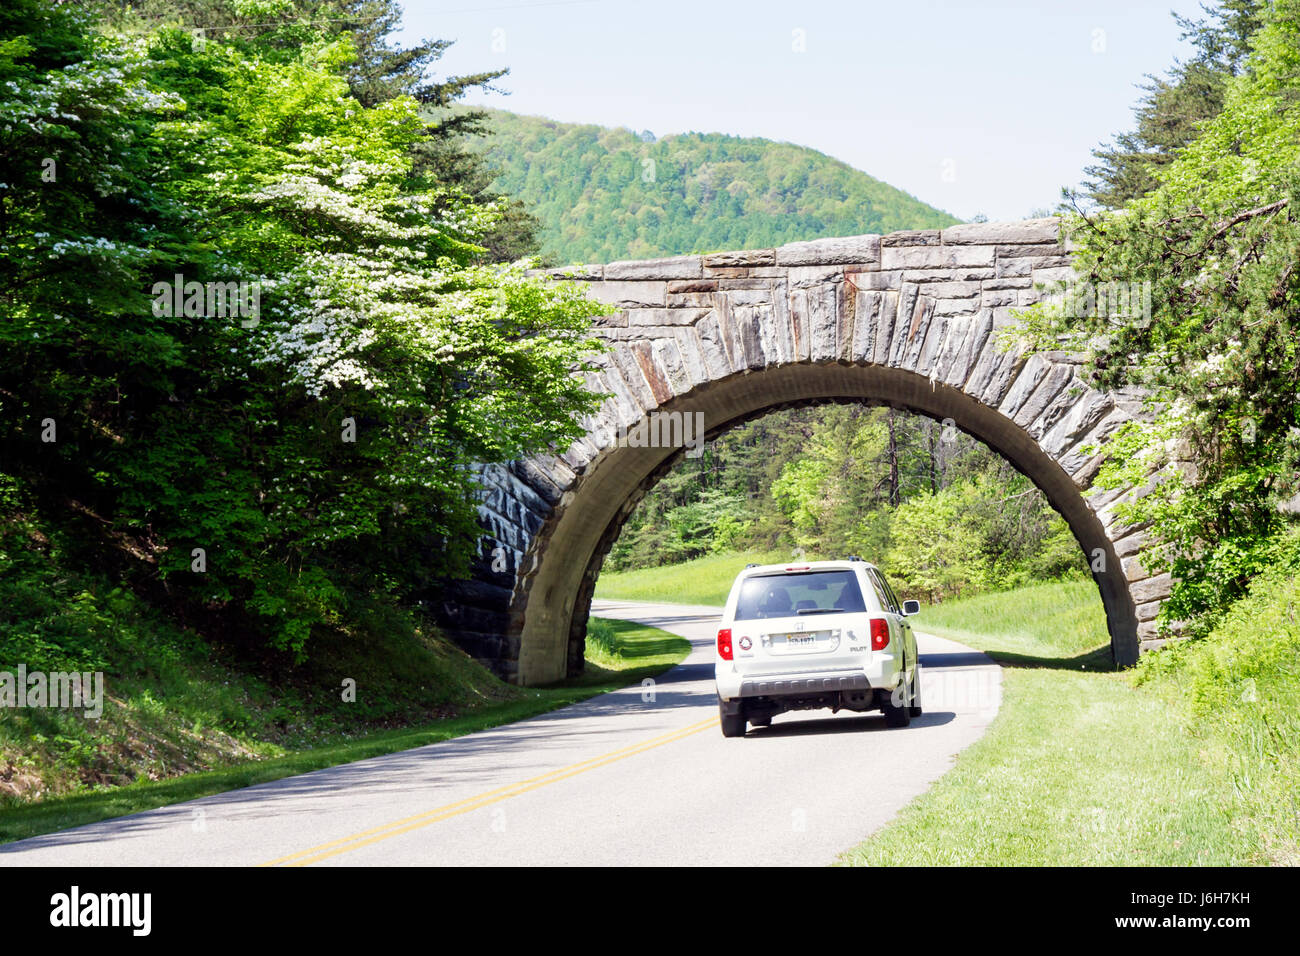 Virginia Roanoke Blue Ridge Parkway Appalachian Mountains stone bridge SUV vehicle - Stock Image